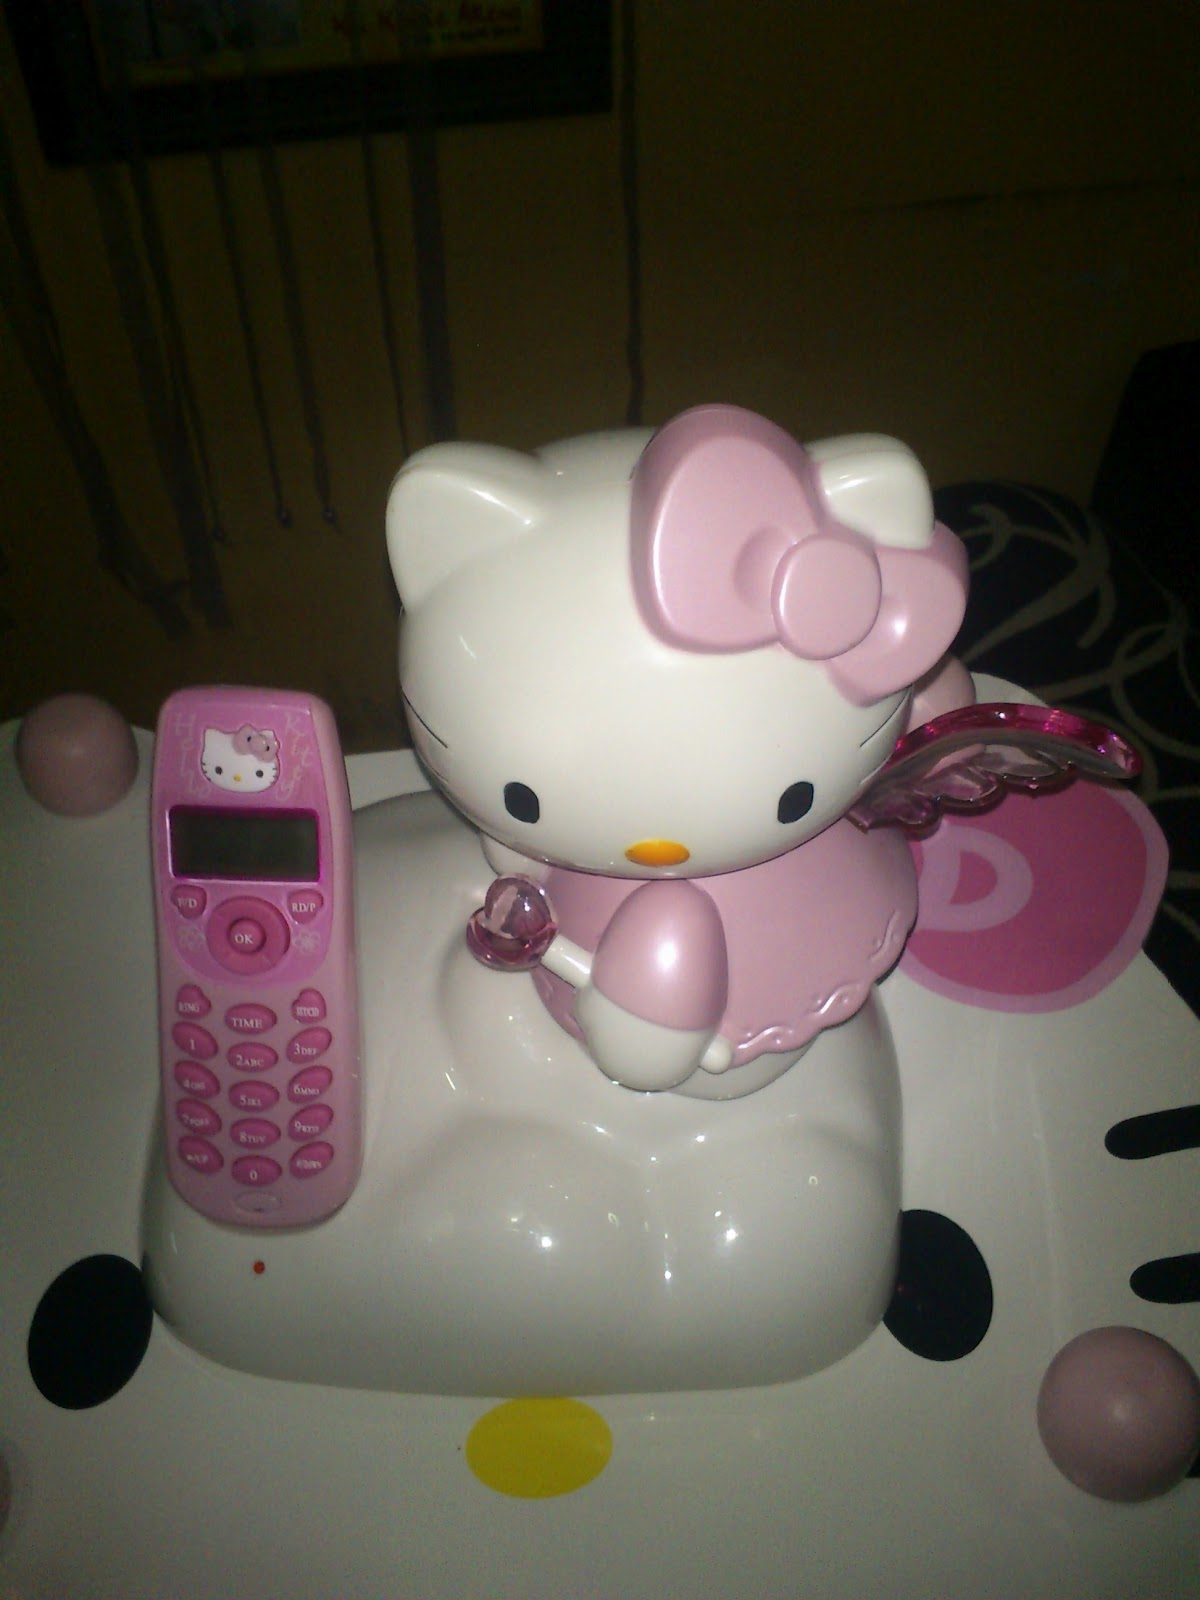 Lihat Rumah Hello Kitty House Of Keita Kitty Telepon Kitty